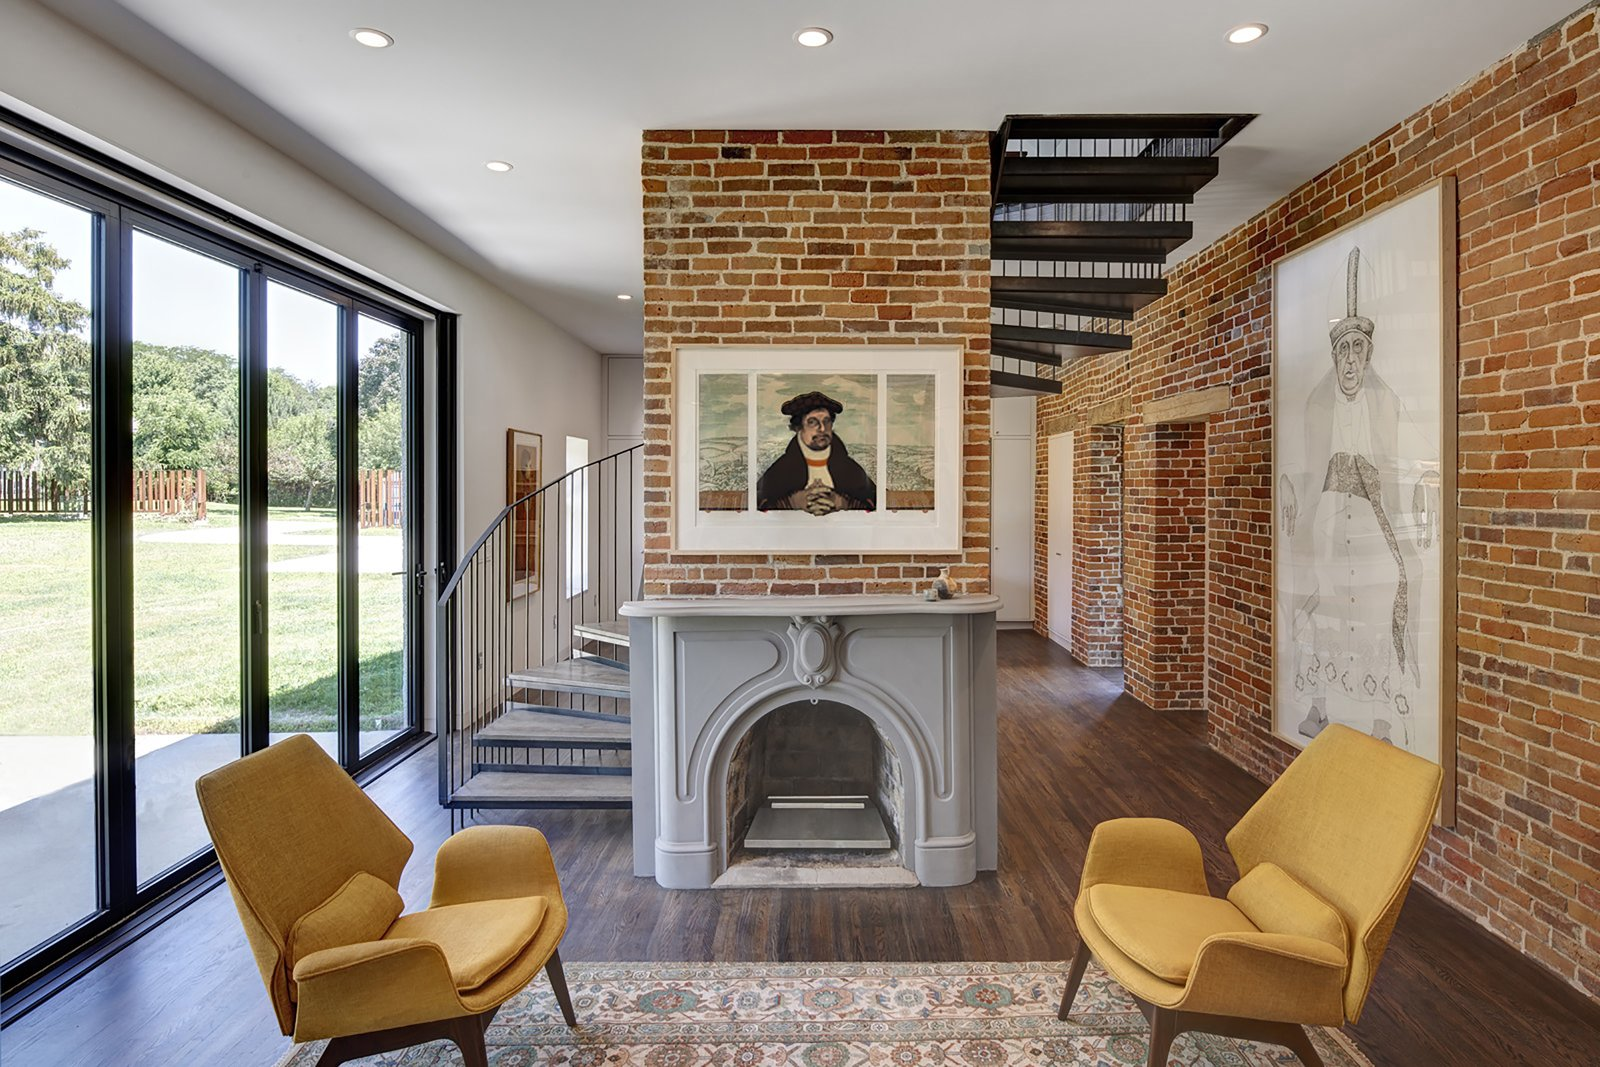 Living Room, Standard Layout Fireplace, Dark Hardwood Floor, Ceiling Lighting, Recessed Lighting, and Chair  Photo 6 of 13 in An 1850s Farmhouse in Iowa City Gets a Modern Makeover